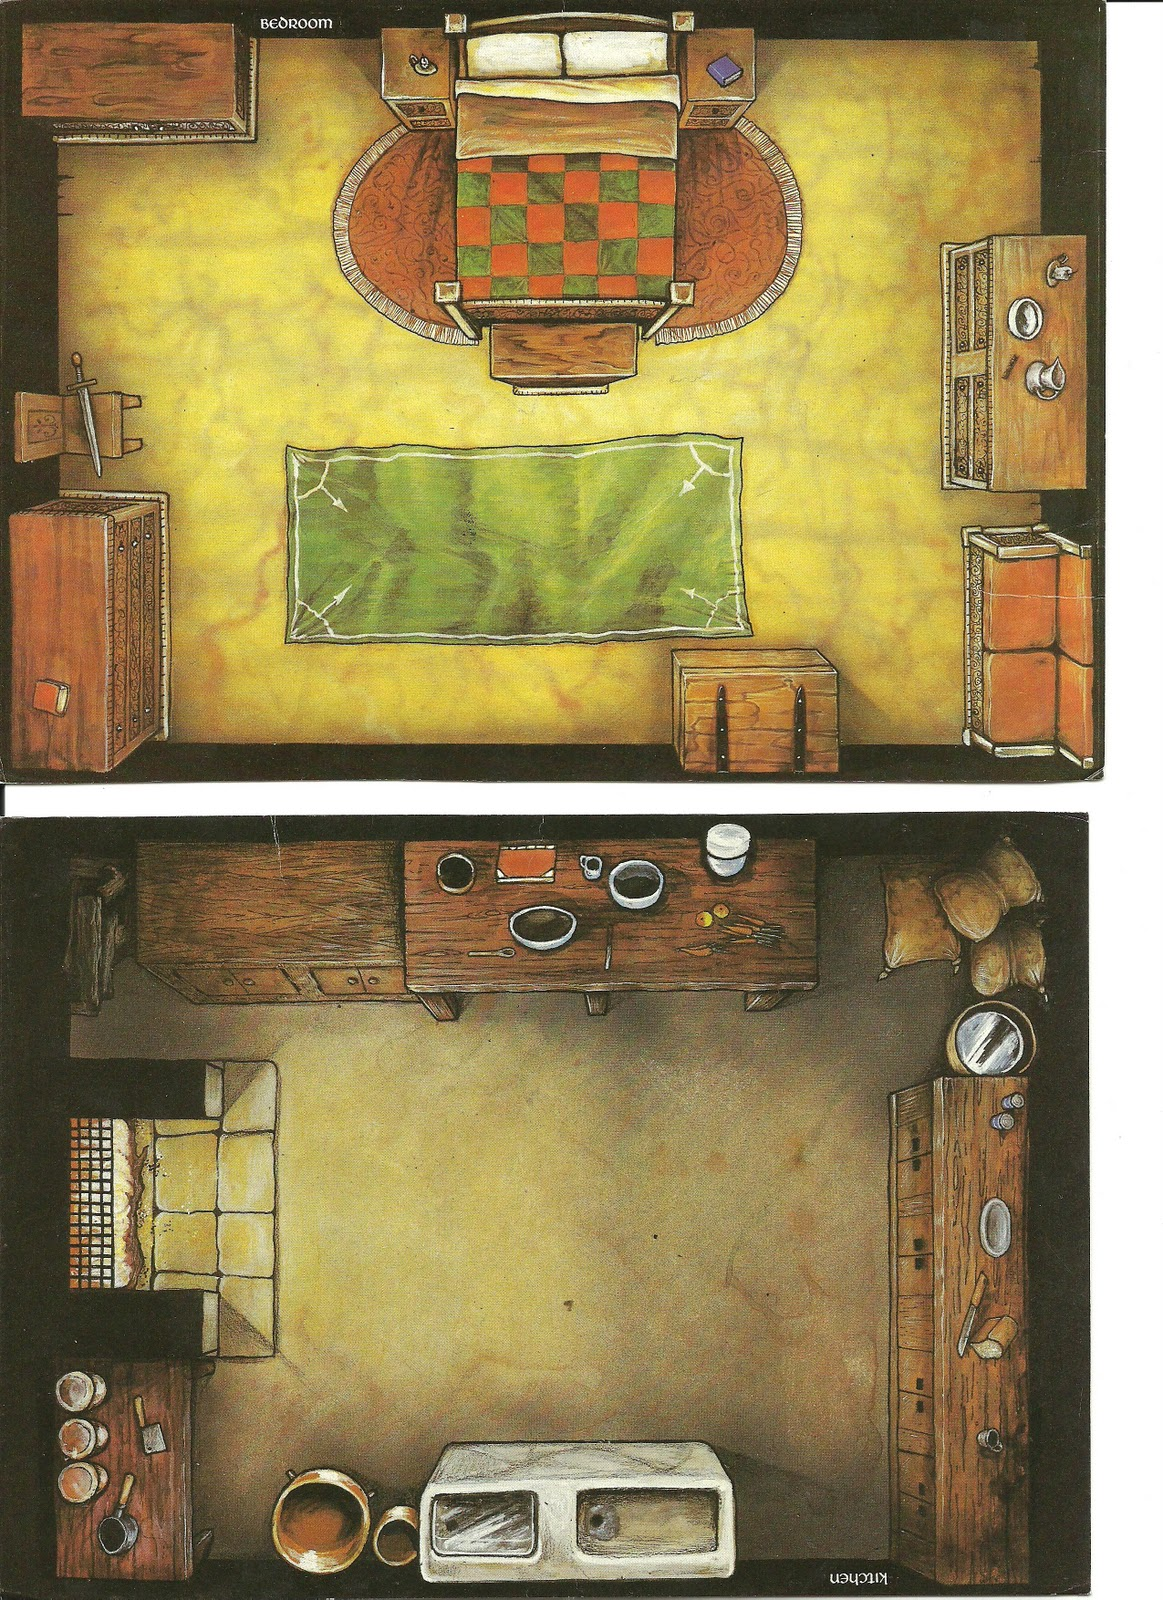 David S Rpg Dungeon Rooms